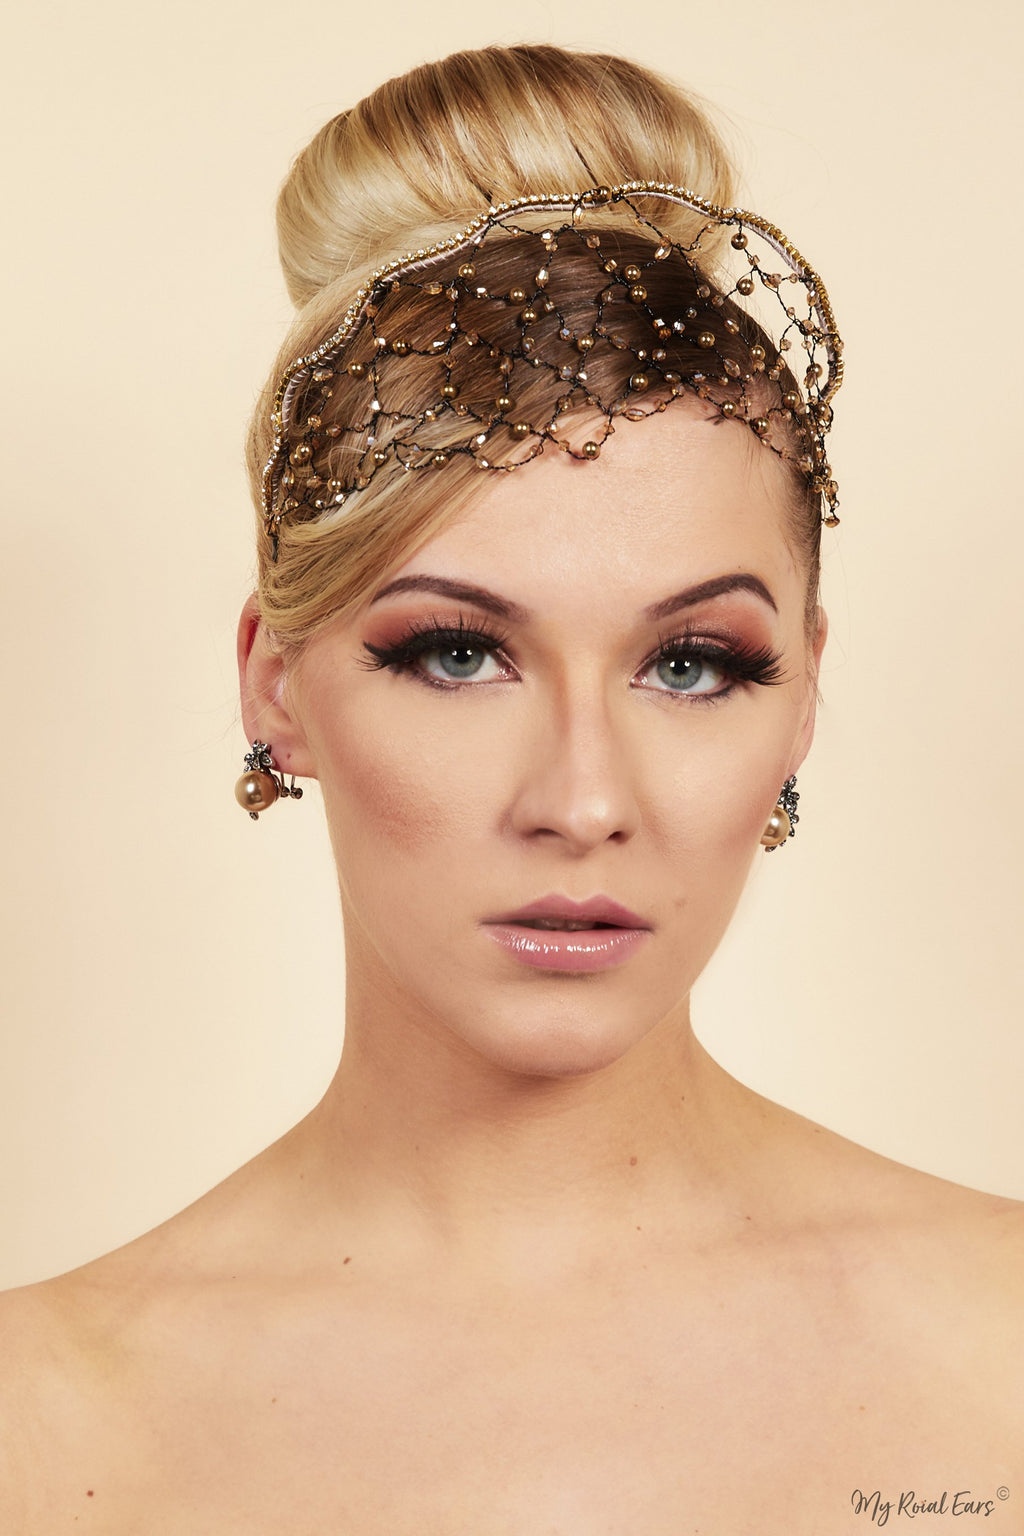 Queen Wangari-stunning embellished wired headpiece - My Roial Ears LTD